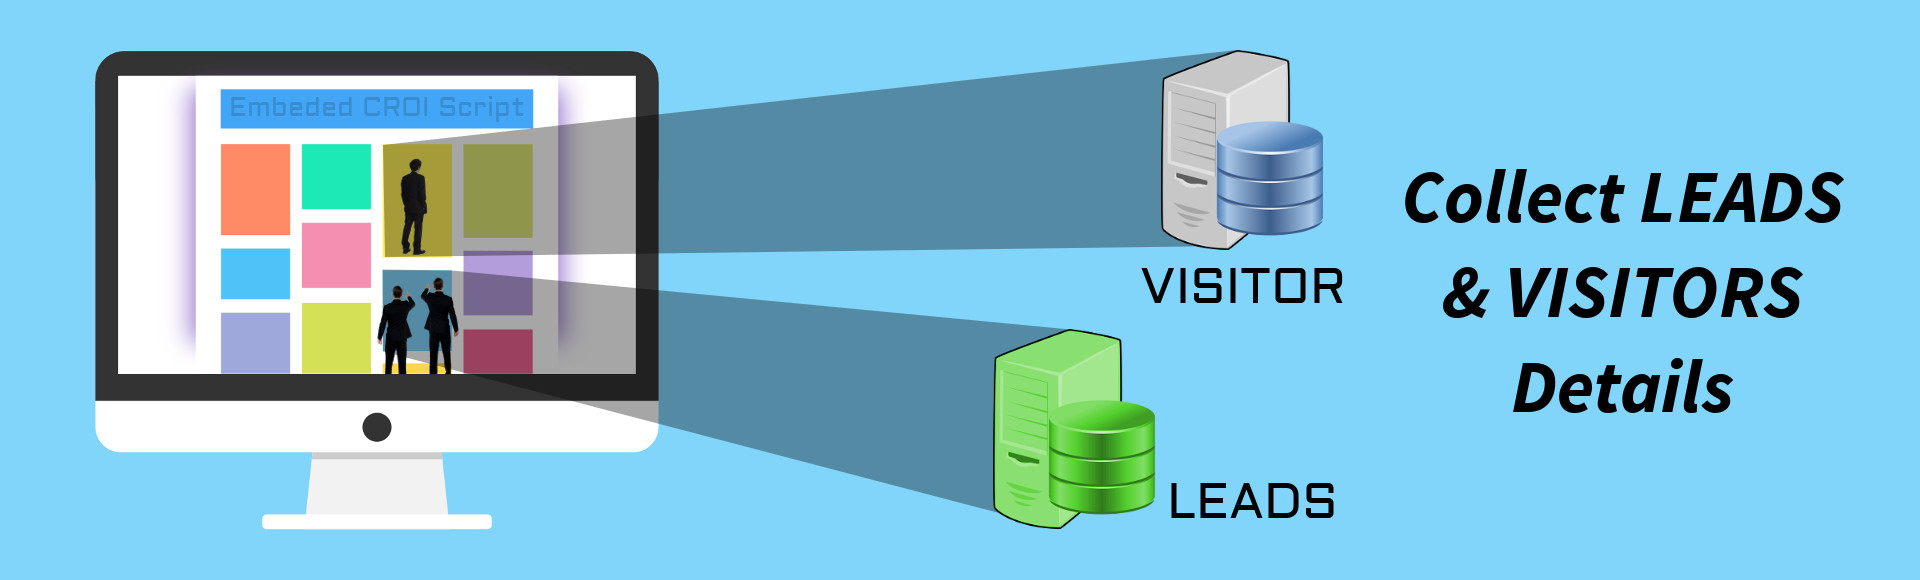 Qualify Visitors and Get Leads